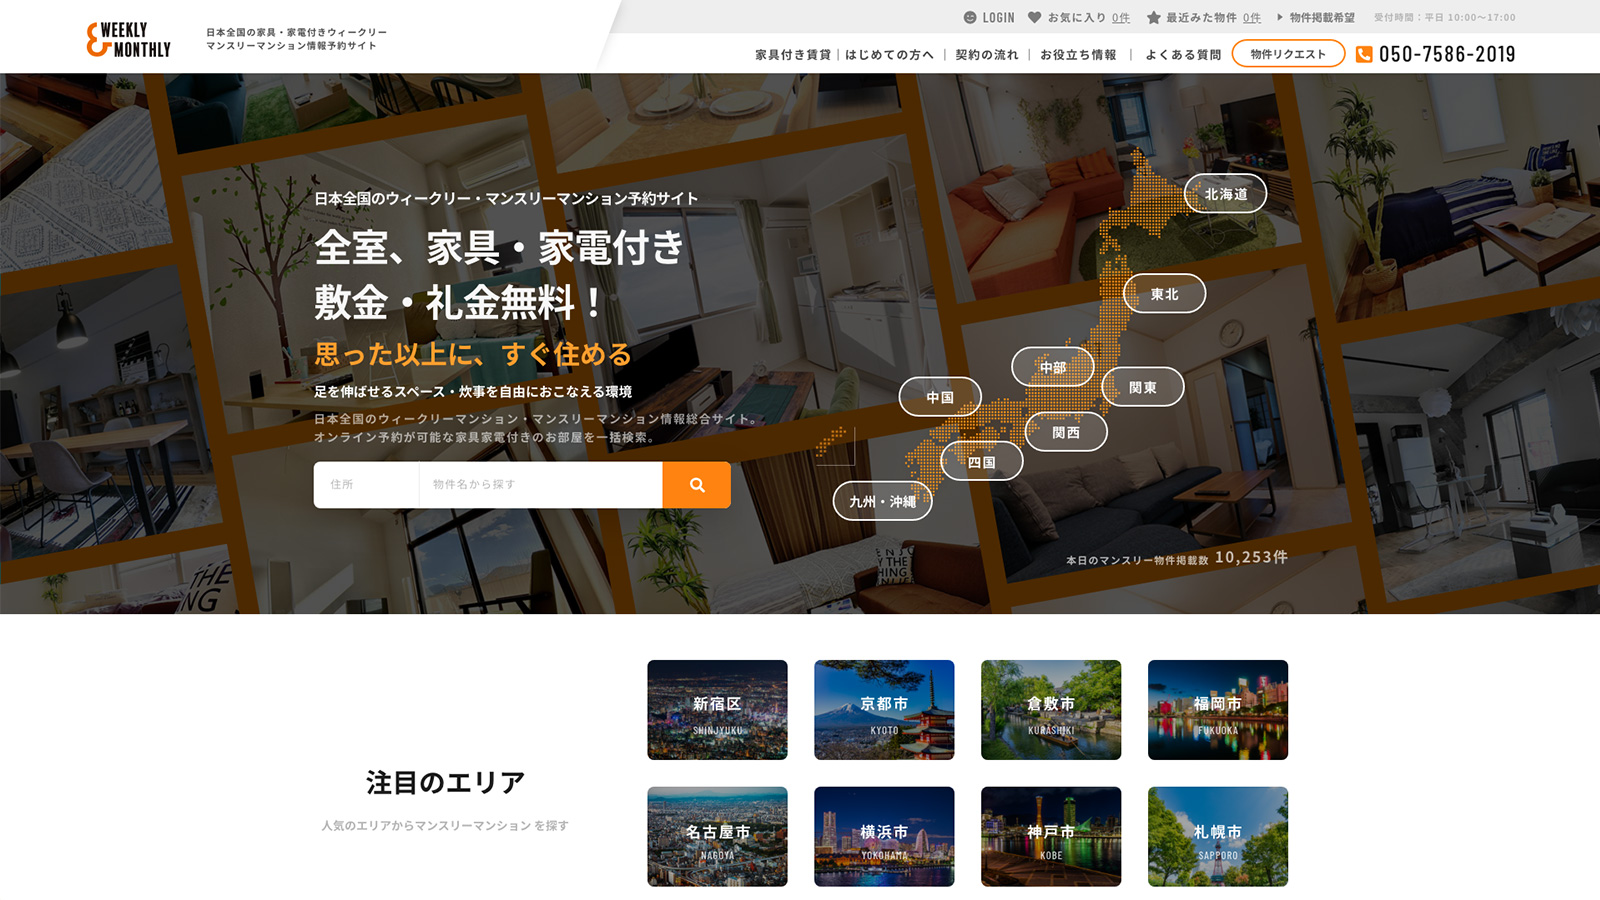 【PR】Weekly&Monthlyほか関連サイトをリニューアルいたしました!